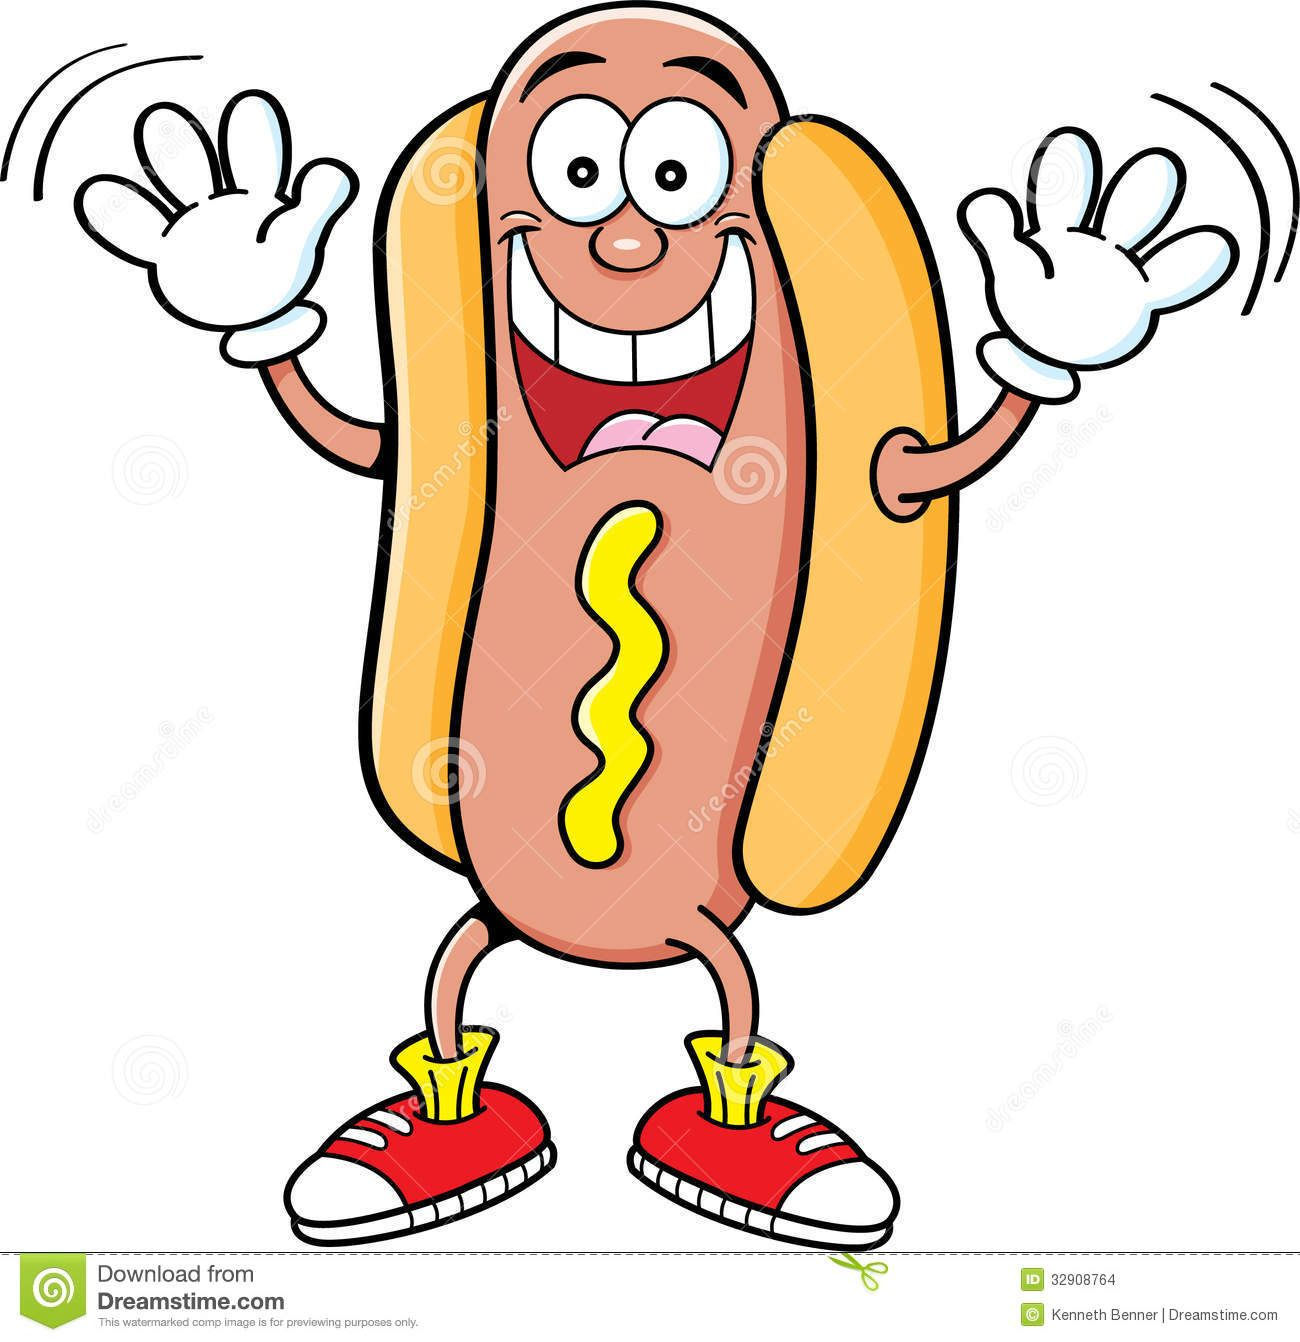 Hot dog cartoon clipart black and white library Cartoon Hotdog Waving Stock Images - Image: 32908764 ... black and white library